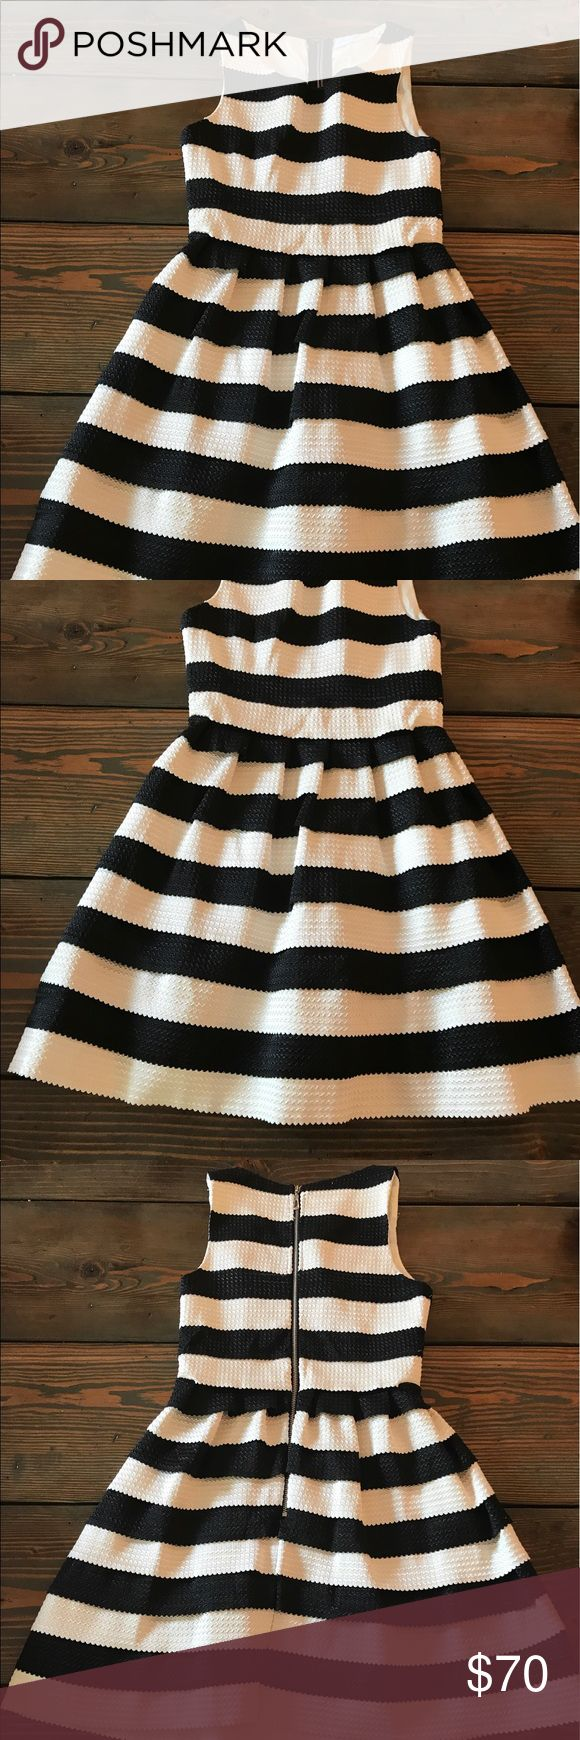 Jun&Ivy classic black and white dress So chic and classy! Fit and flare black and white stripe cocktail dress with exposed zipper in back. Worn once to an event. Mint condition Dresses